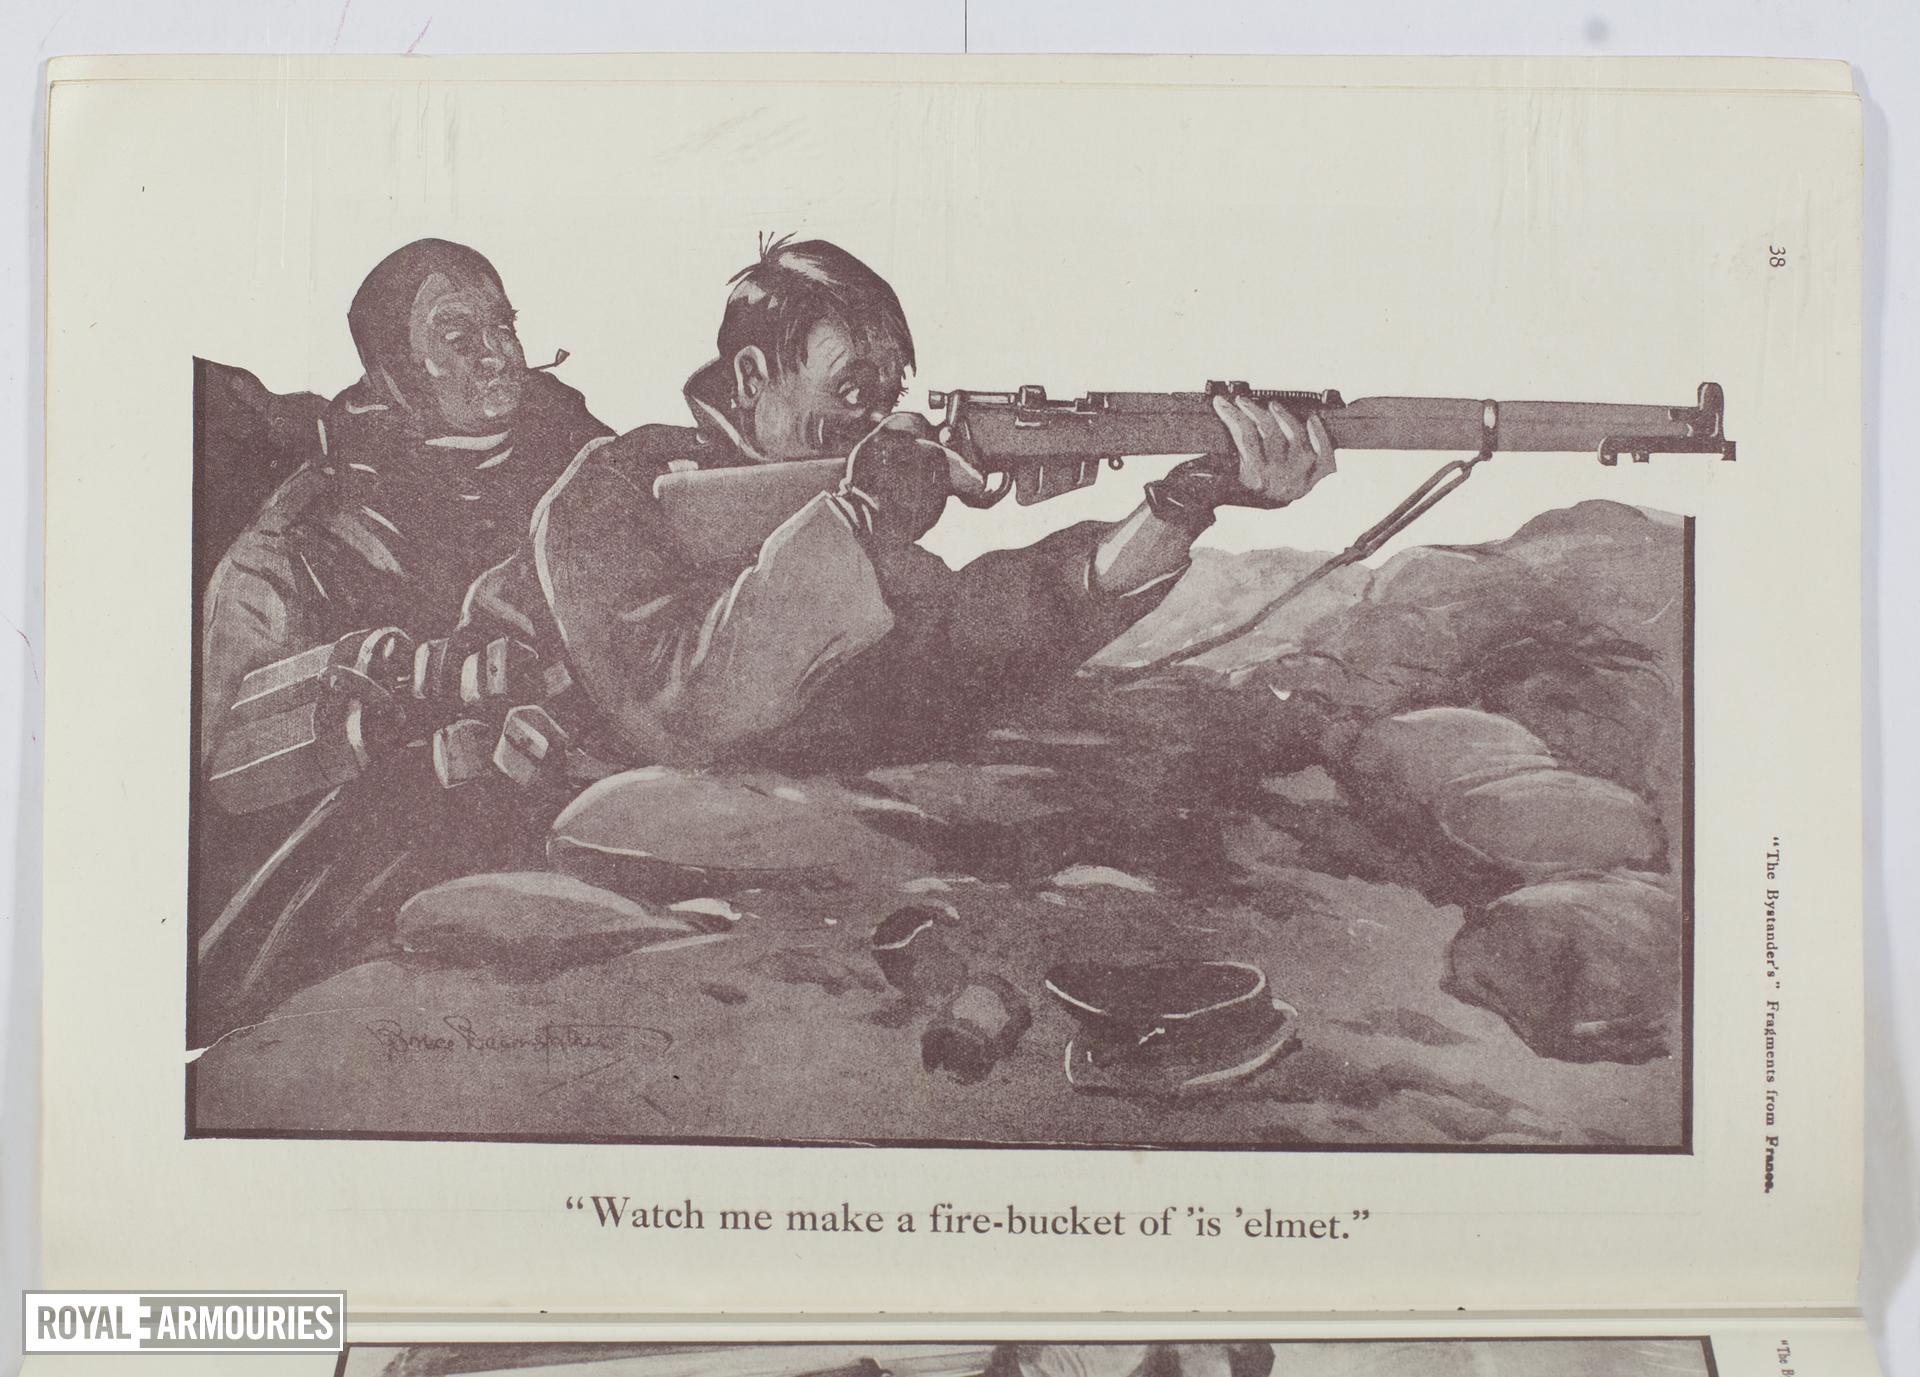 Plate entitled ,'Watch me make a fire-bucket of 'is 'elmet,' page 38, taken from the title, The Bystander's Fragments from France, tenth edition by Captain Bruce Bairnsfather.